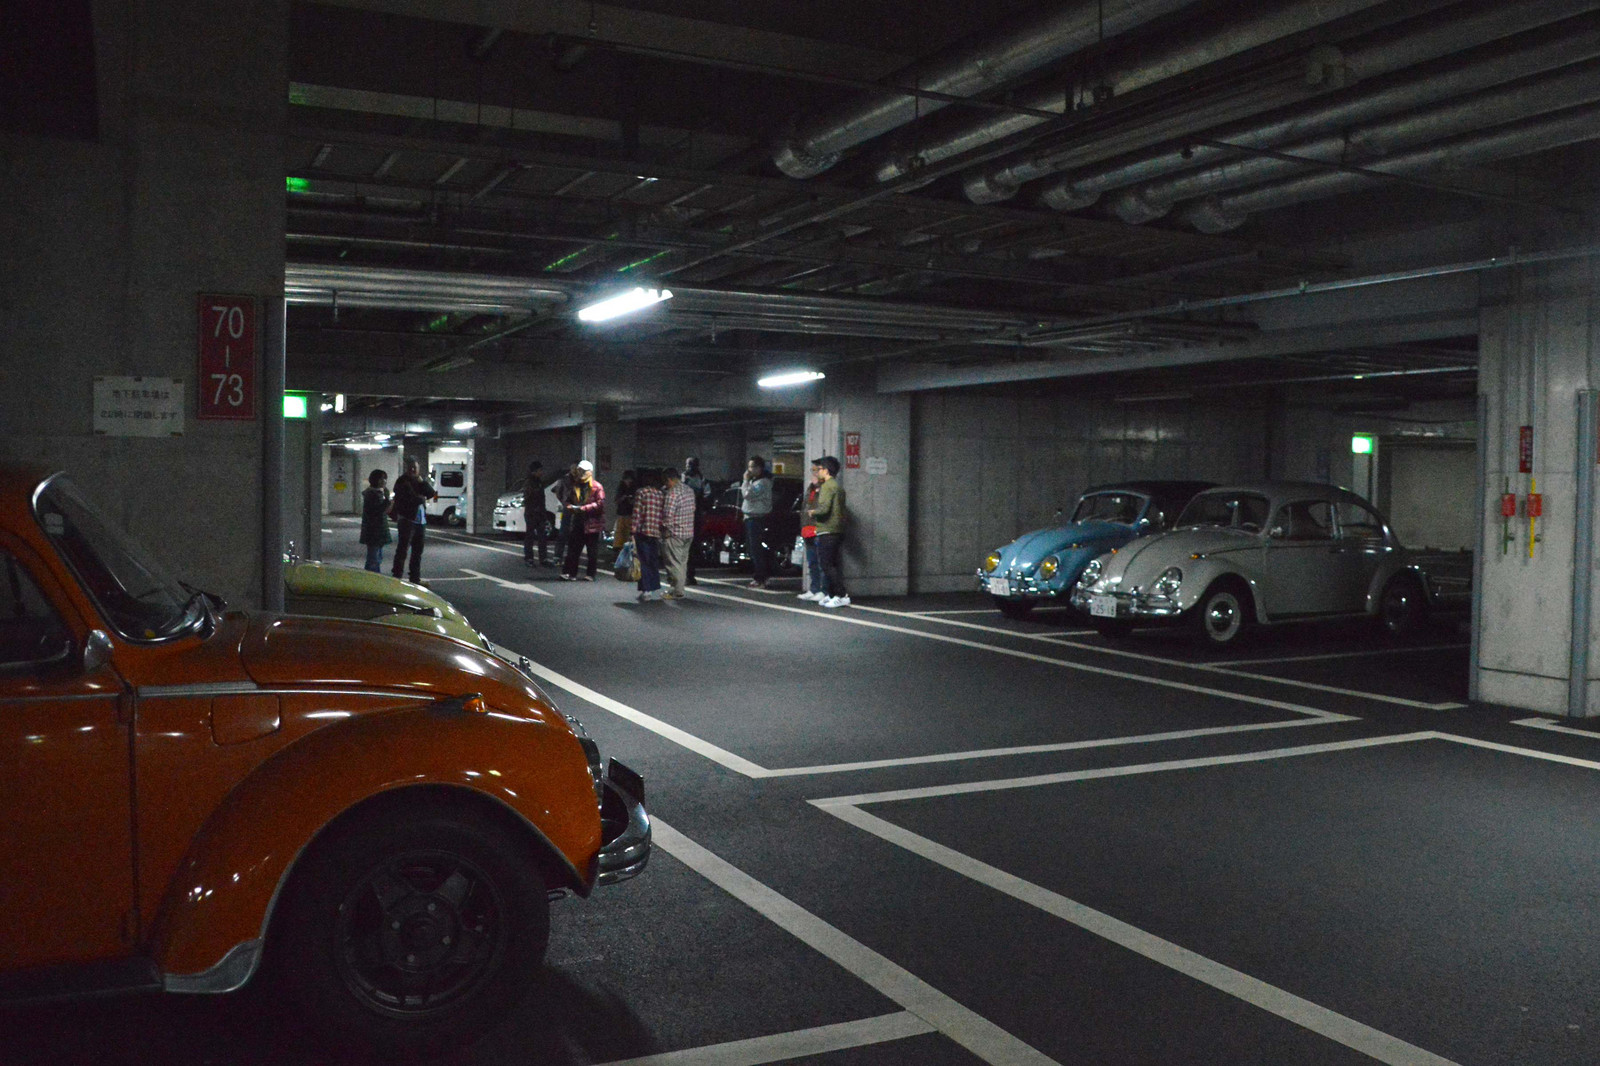 Dsc_0131_vws_in_underground_parking